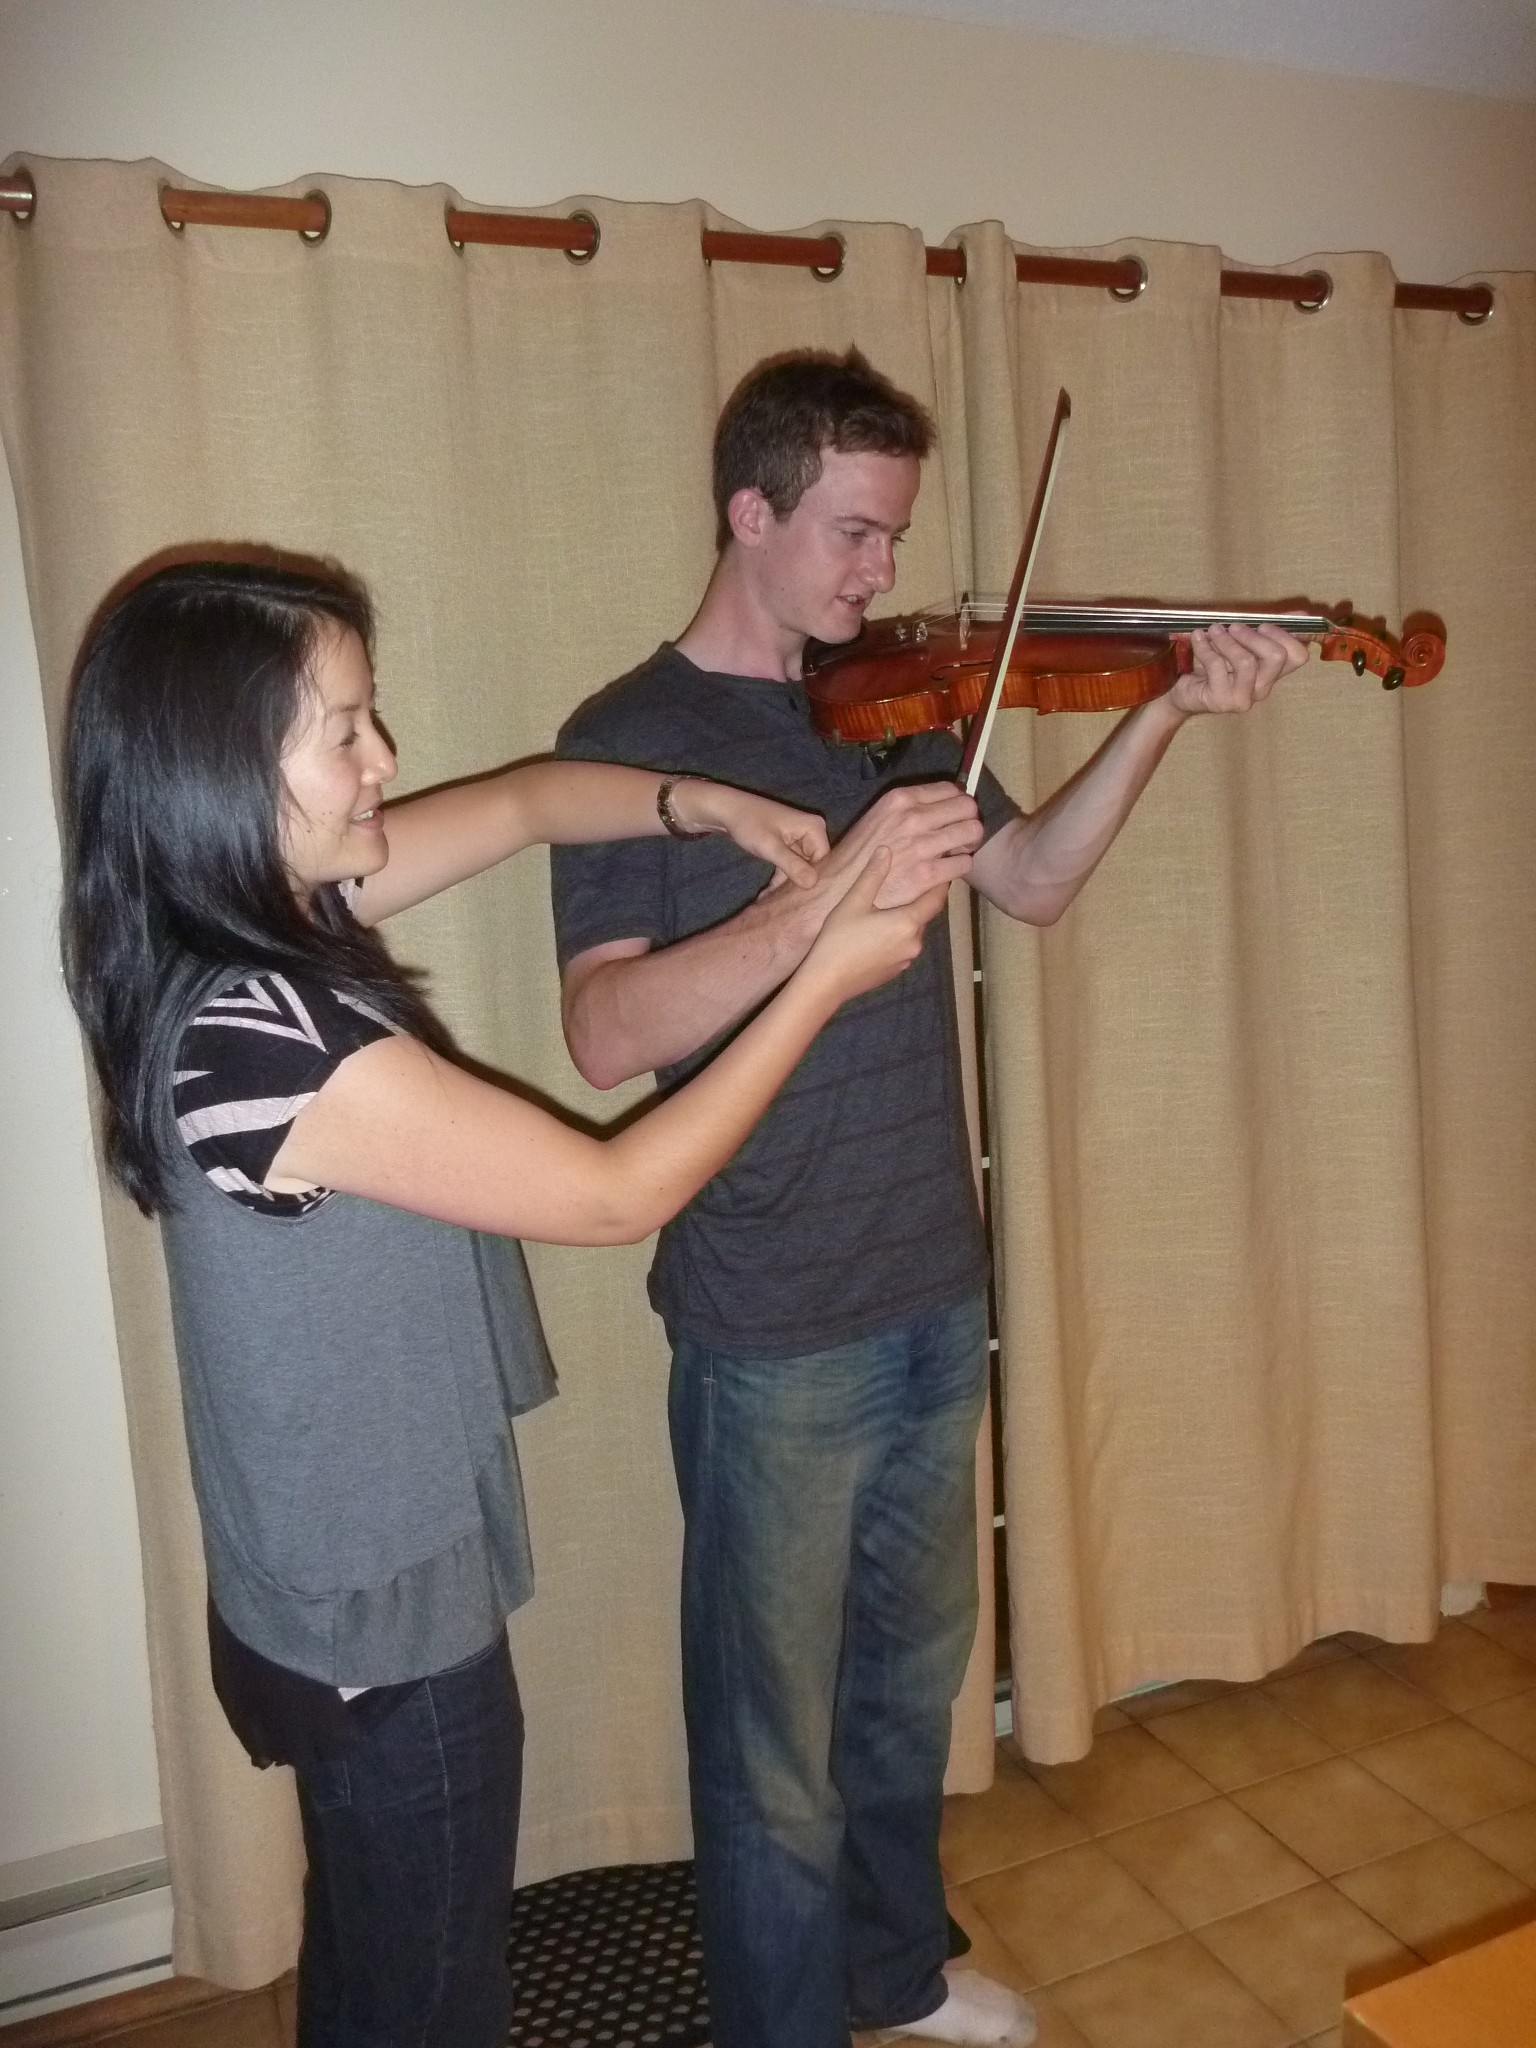 Top Six Violin Postures That Cause Pain and Violin Injuries